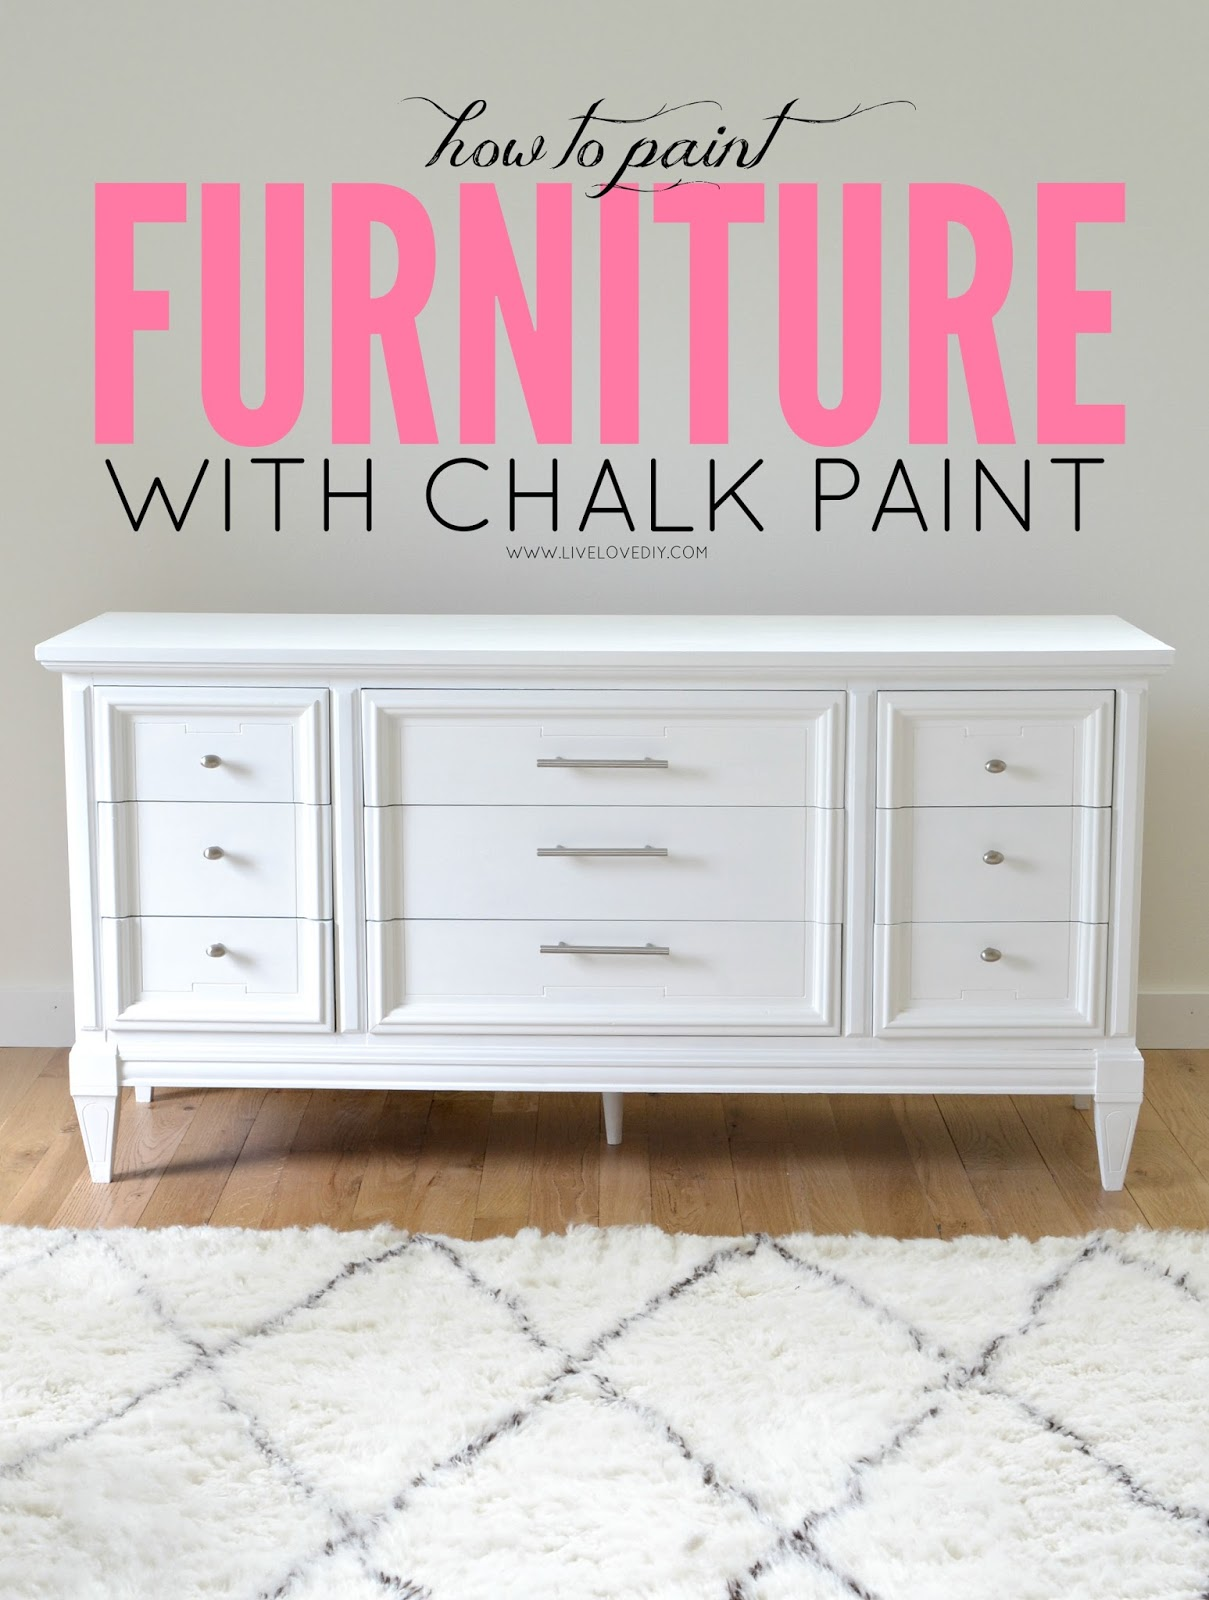 How To Paint Furniture With Chalk Paint (and How To Survive A DIY . Full resolution‎  portrait, nominally Width 1209 Height 1600 pixels, portrait with #BA1141.